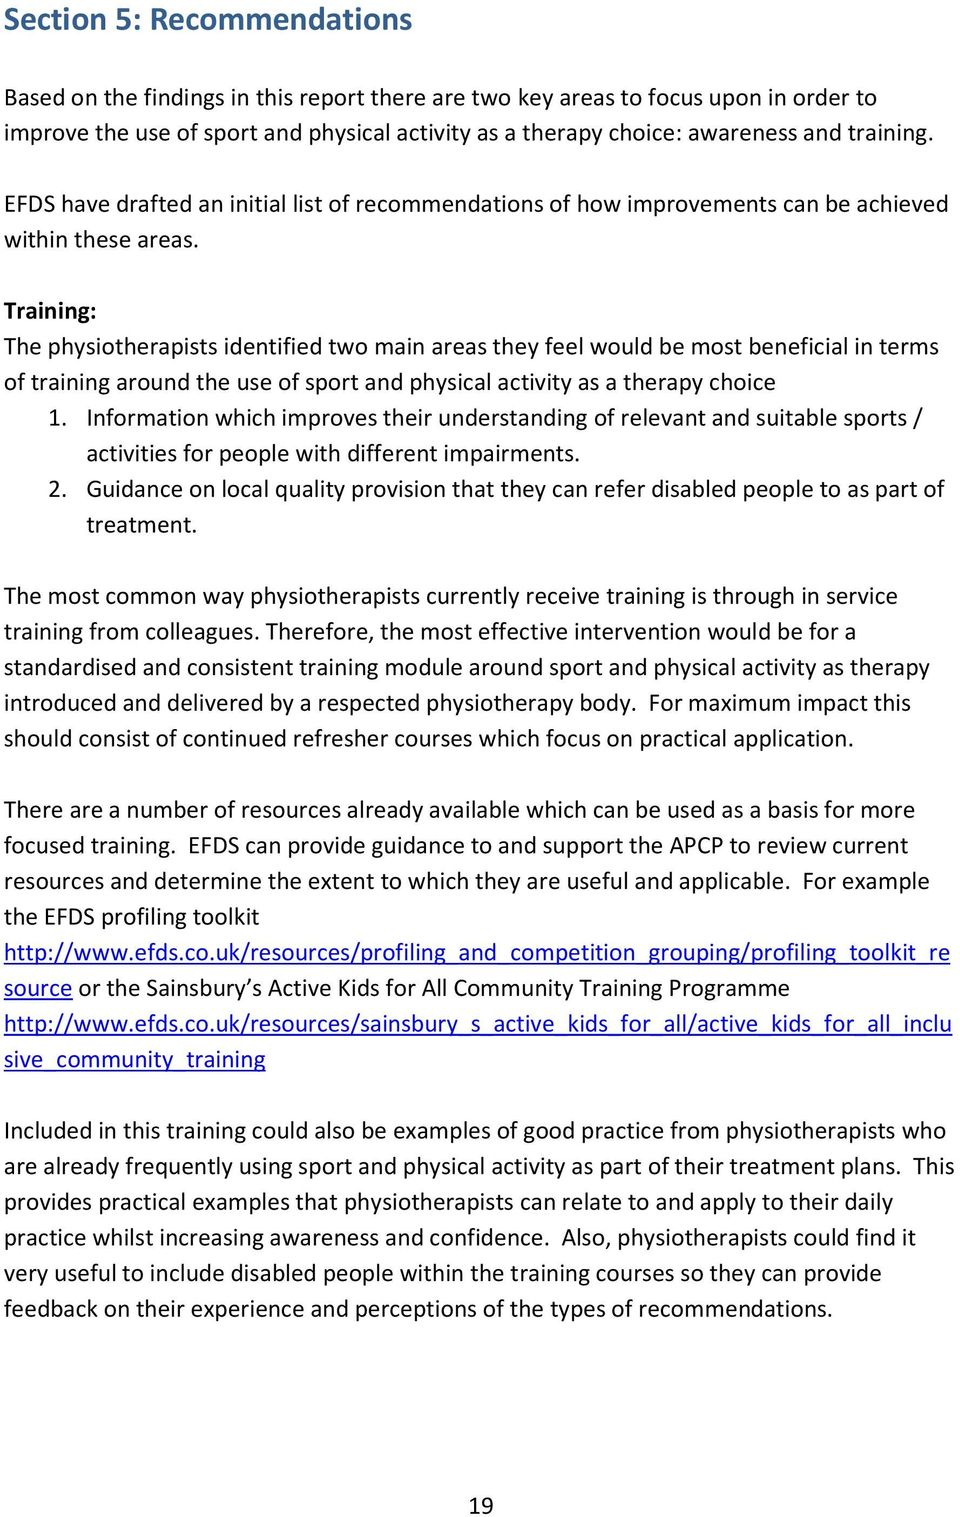 Training: The physiotherapists identified two main areas they feel would be most beneficial in terms of training around the use of sport and physical activity as a therapy choice 1.